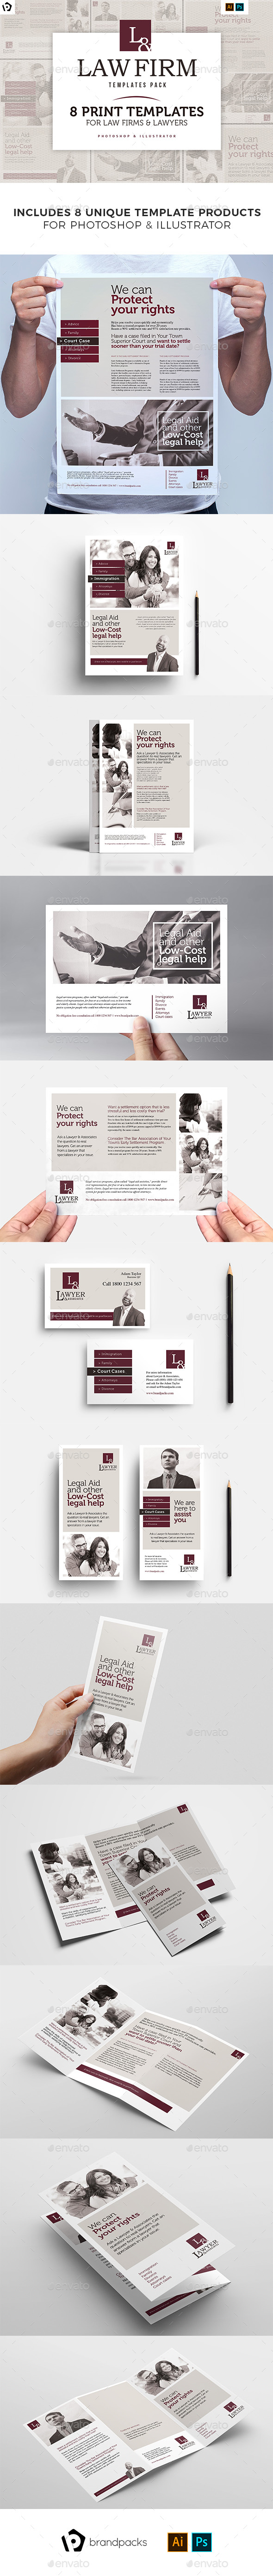 Law Firm Templates Bundle by BrandPacks | GraphicRiver